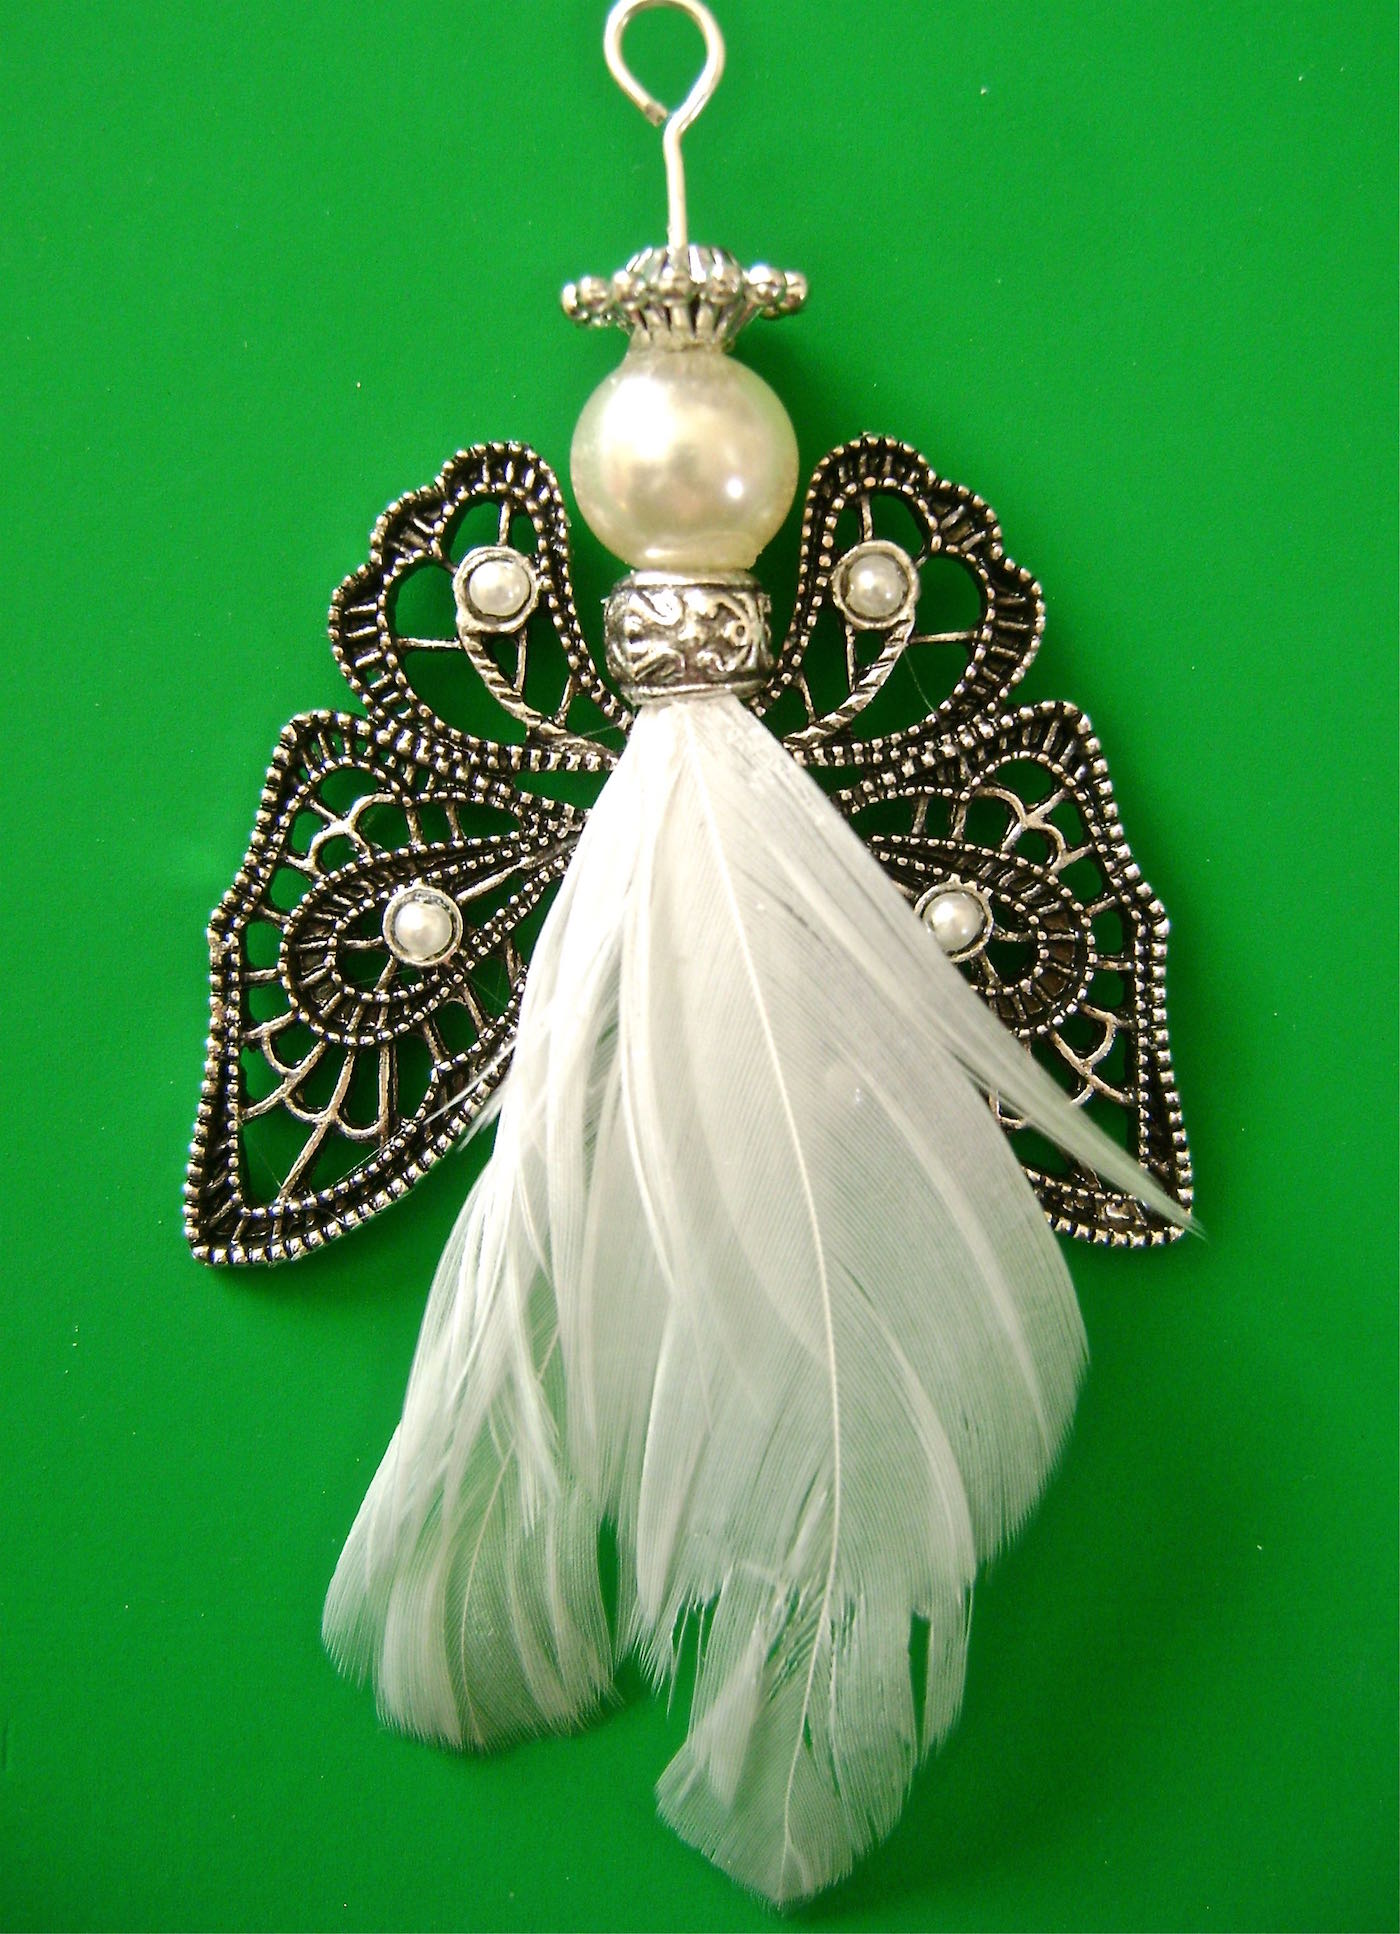 """Ornament measures 3"""" long from the angel's crown to the feather bottom."""